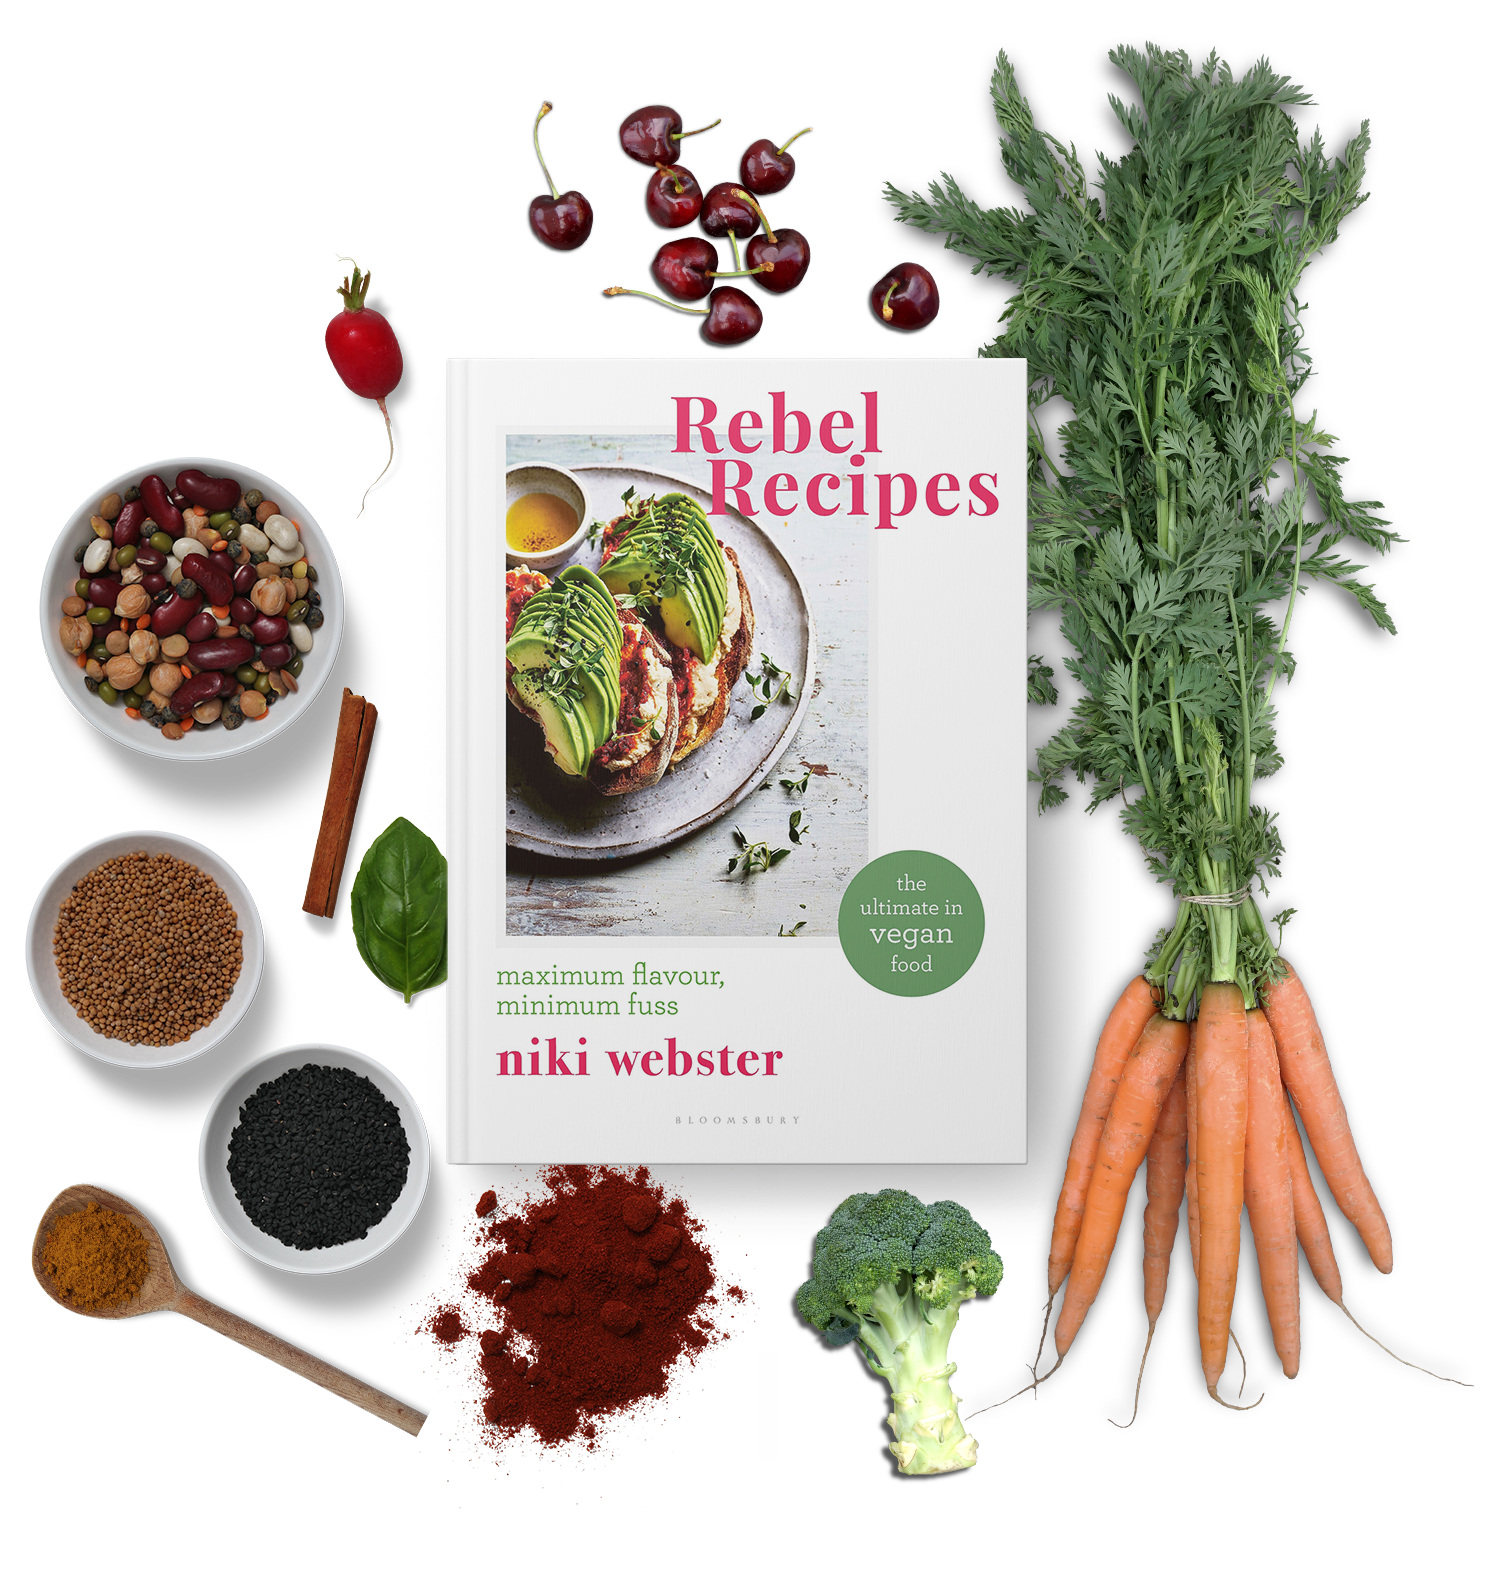 rebel-recipes-book